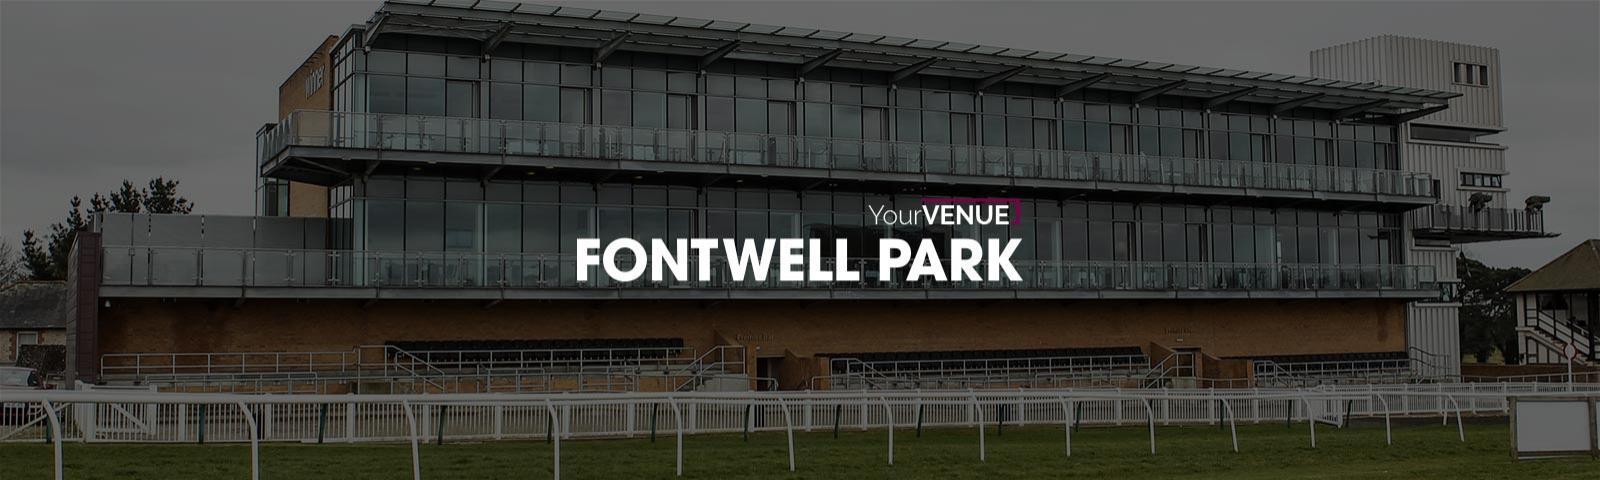 Photo of the main grandstand at Fontwell Park with the Your Venue logo overlaid on top of the image.